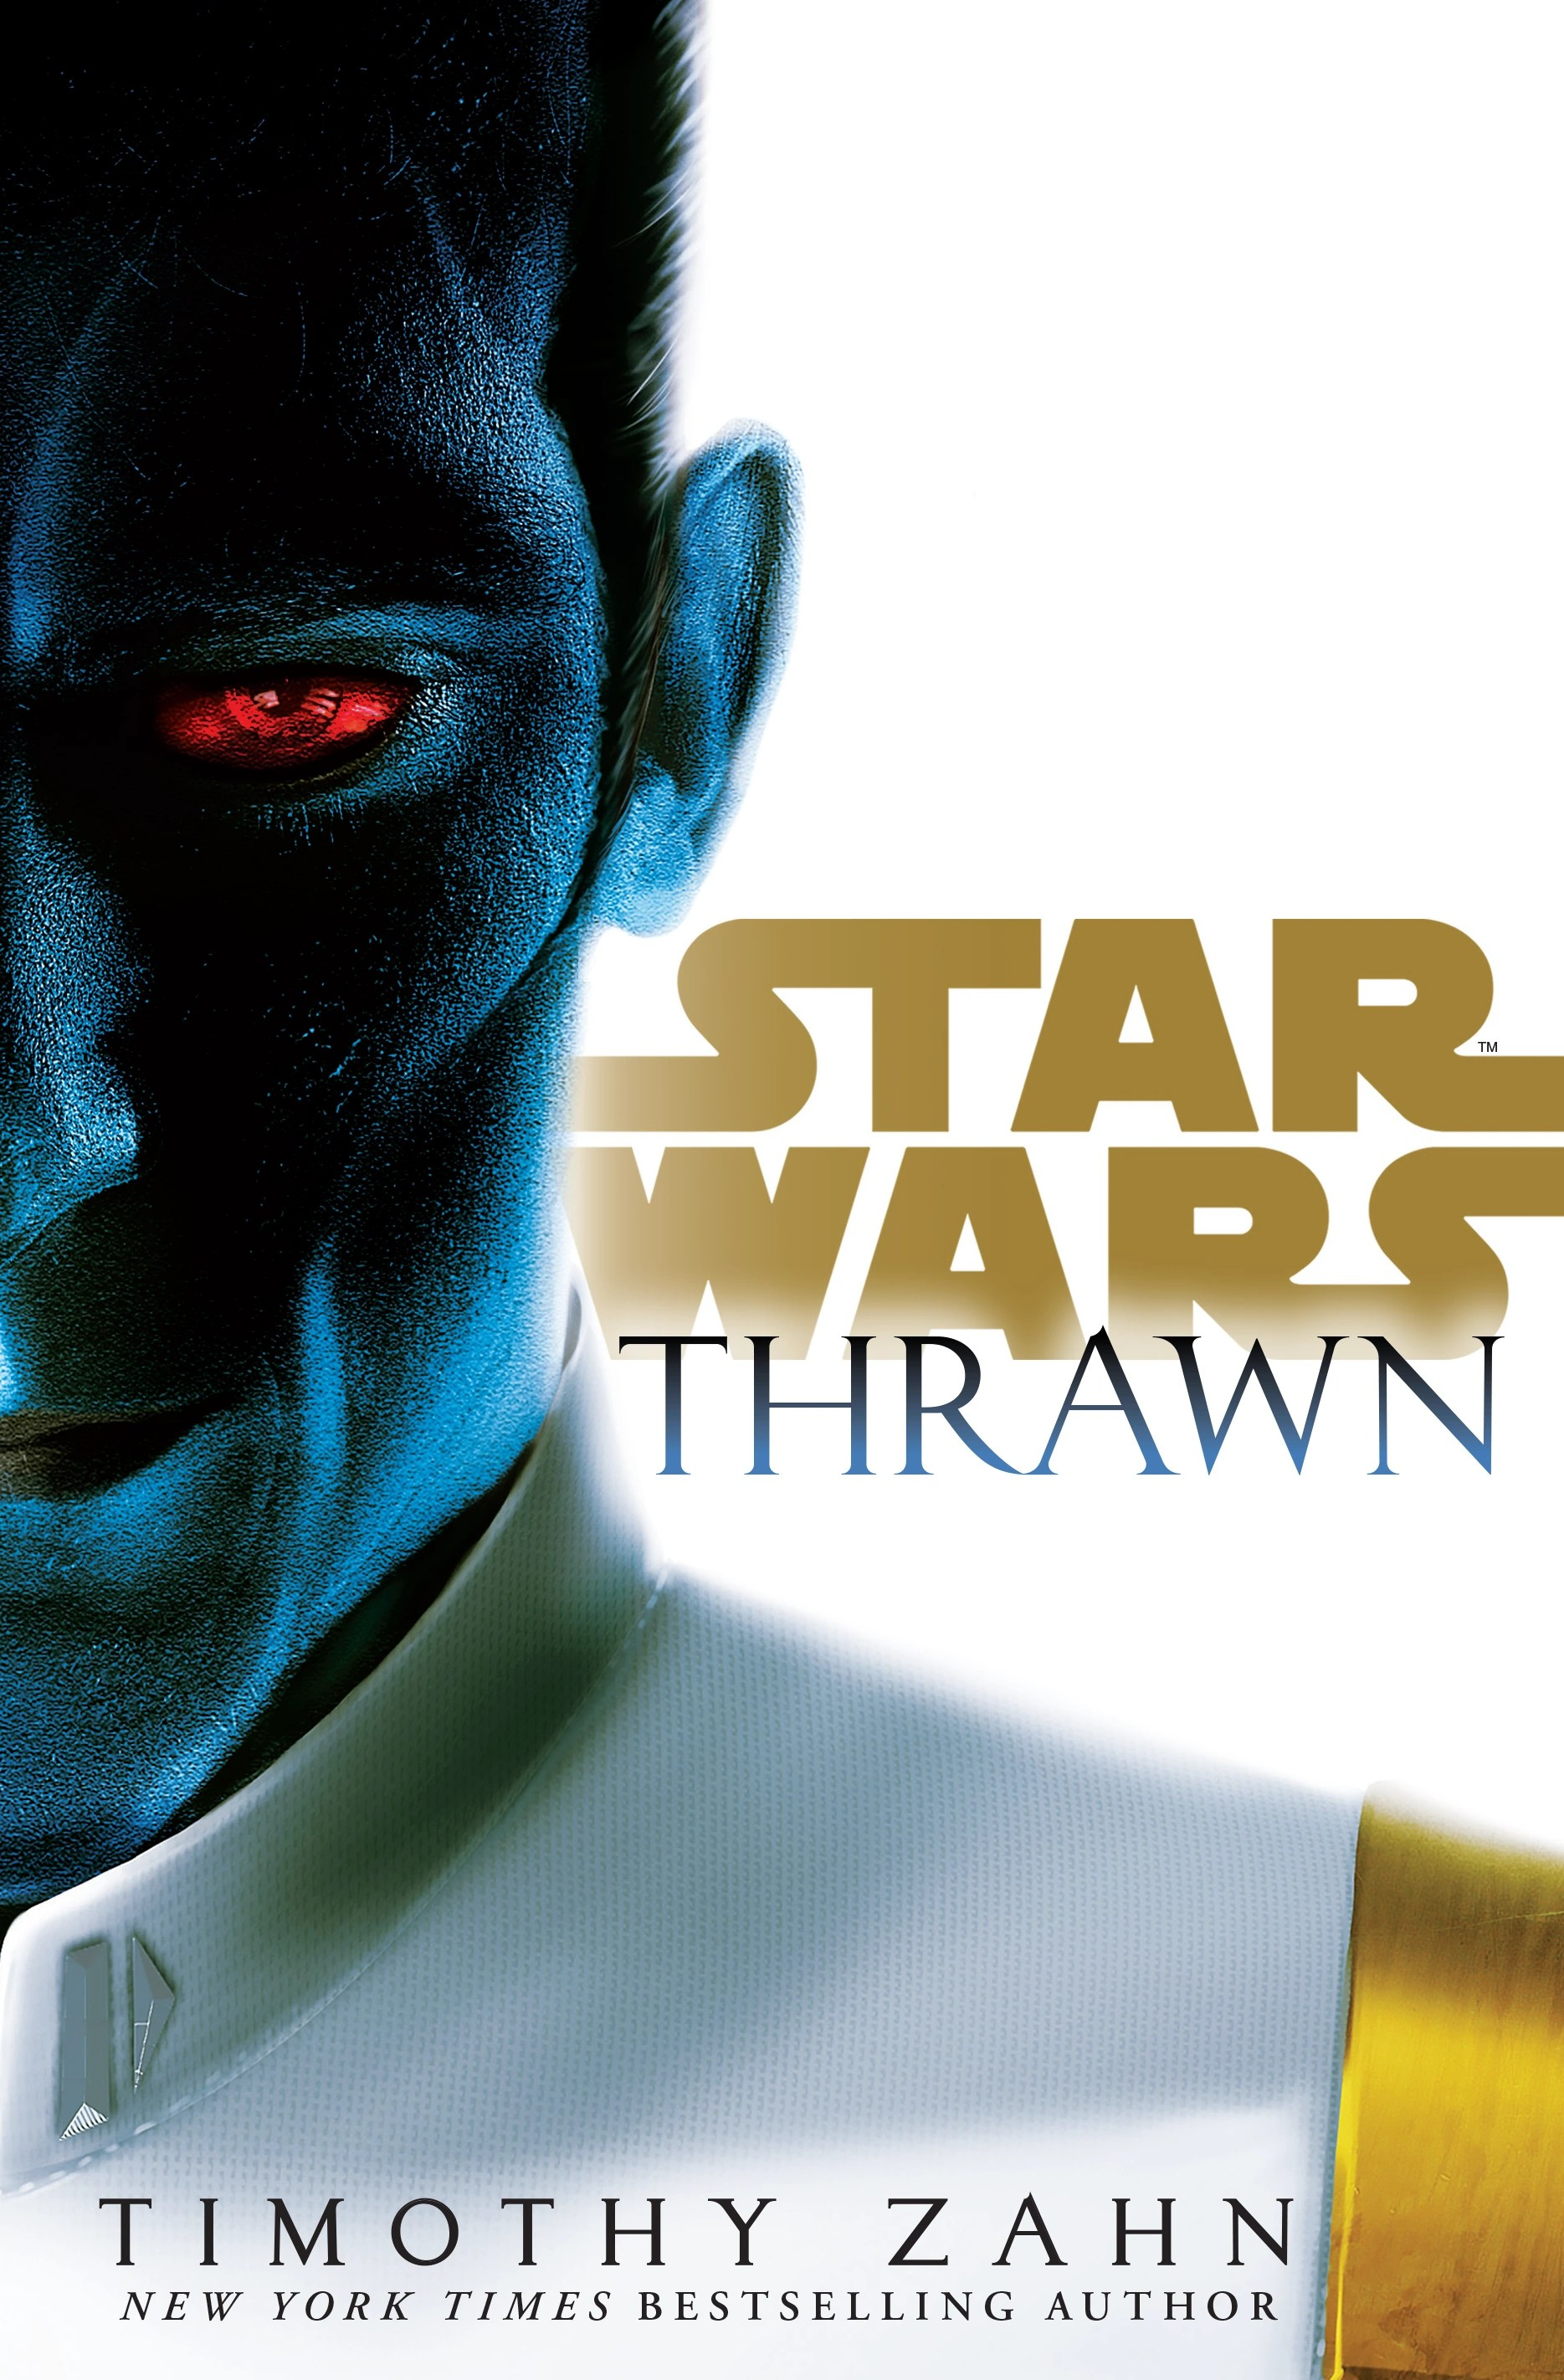 Libros Star Wars Pdf Thrawn Novel Wookieepedia Fandom Powered By Wikia